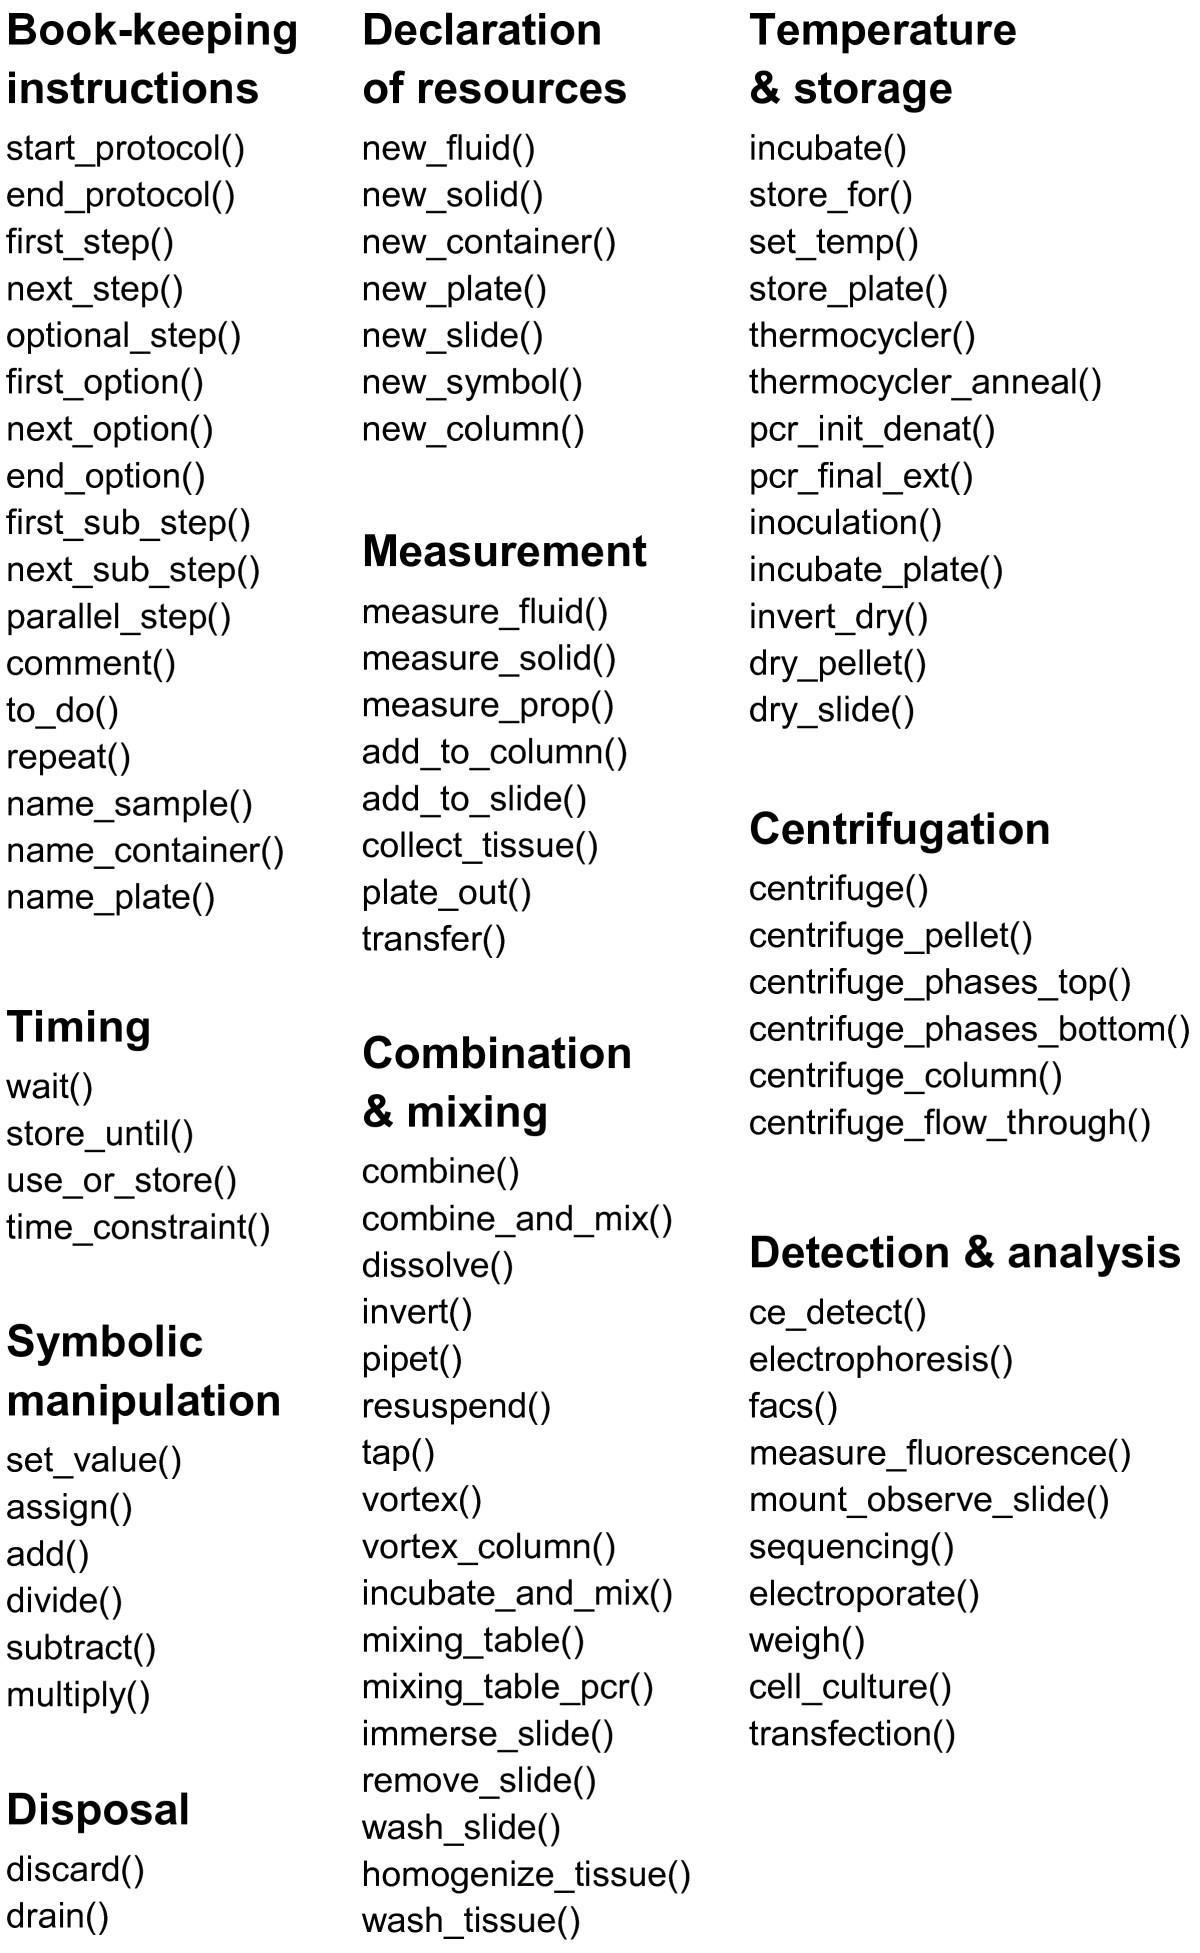 http://static-content.springer.com/image/art%3A10.1186%2F1754-1611-4-13/MediaObjects/13036_2010_Article_59_Fig2_HTML.jpg